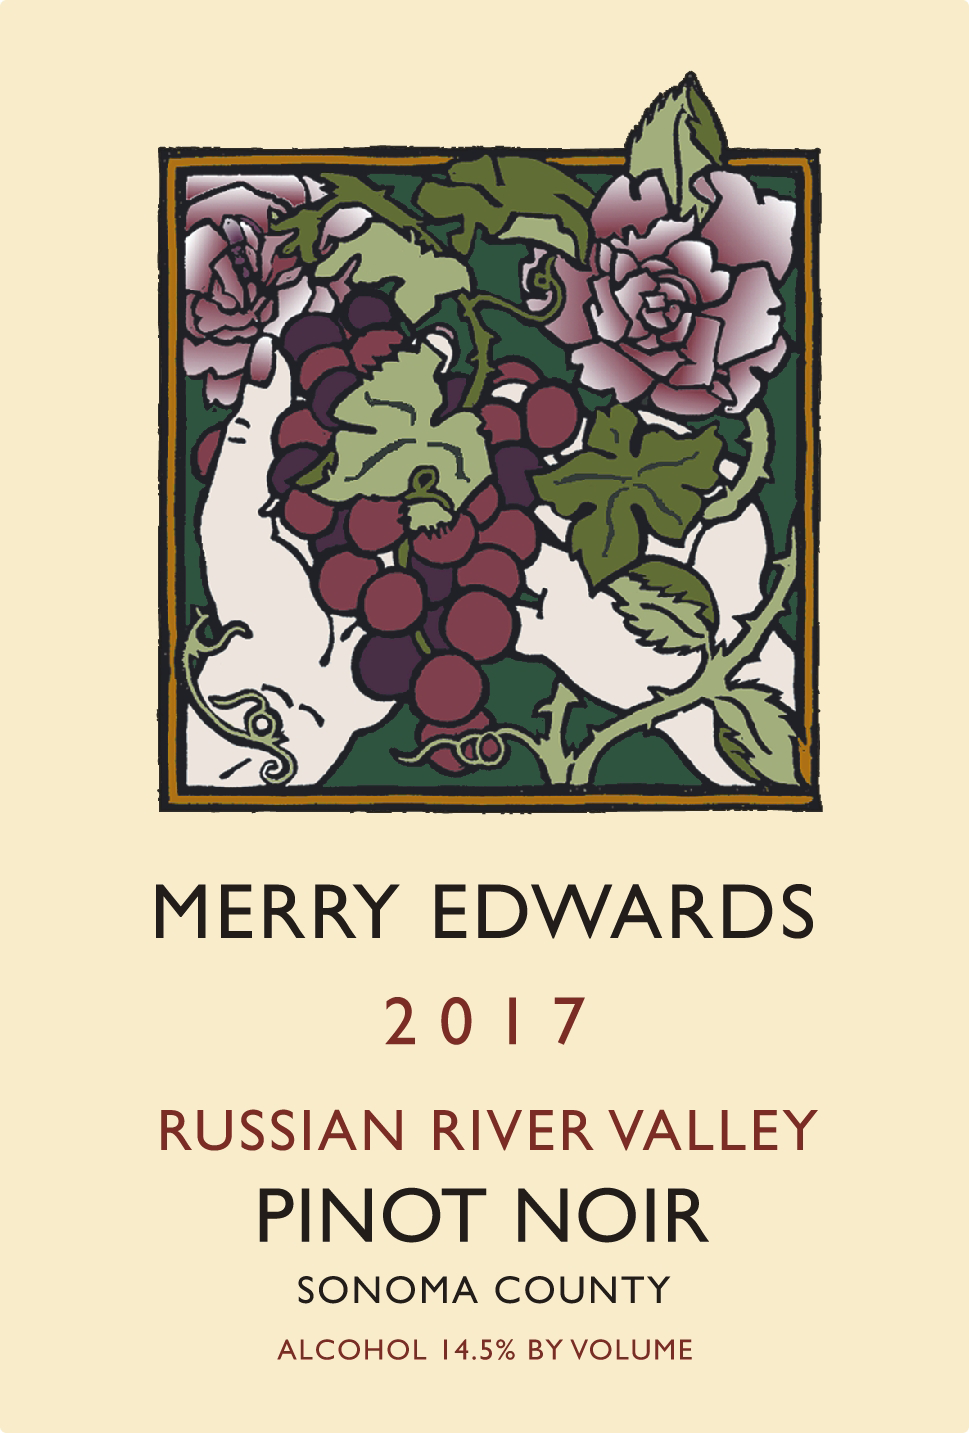 Merry Edwards Russian River Pinot Noir 2017